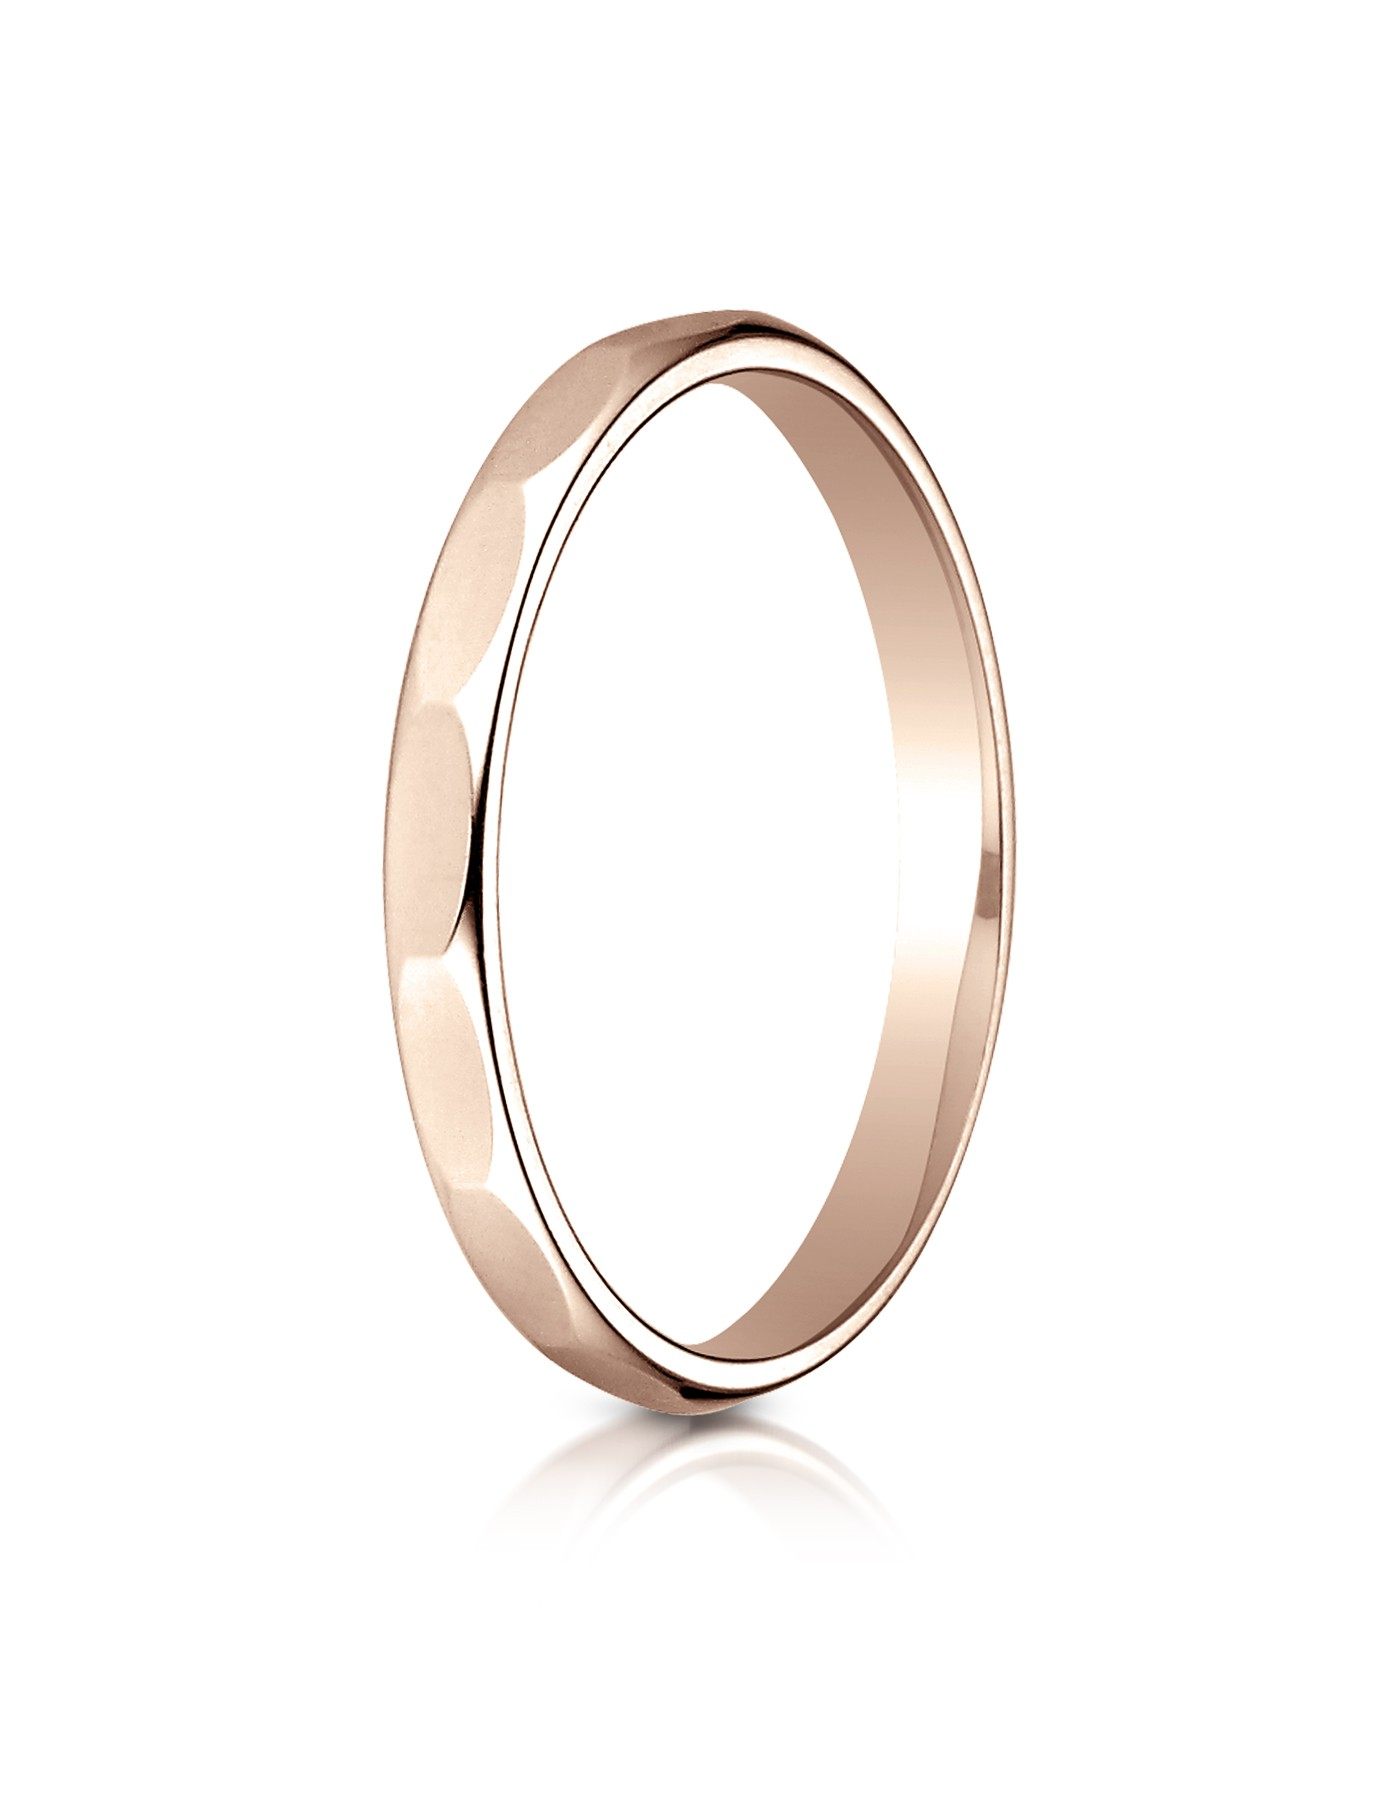 14k Rose Gold 2mm High Polished Faceted Design Band